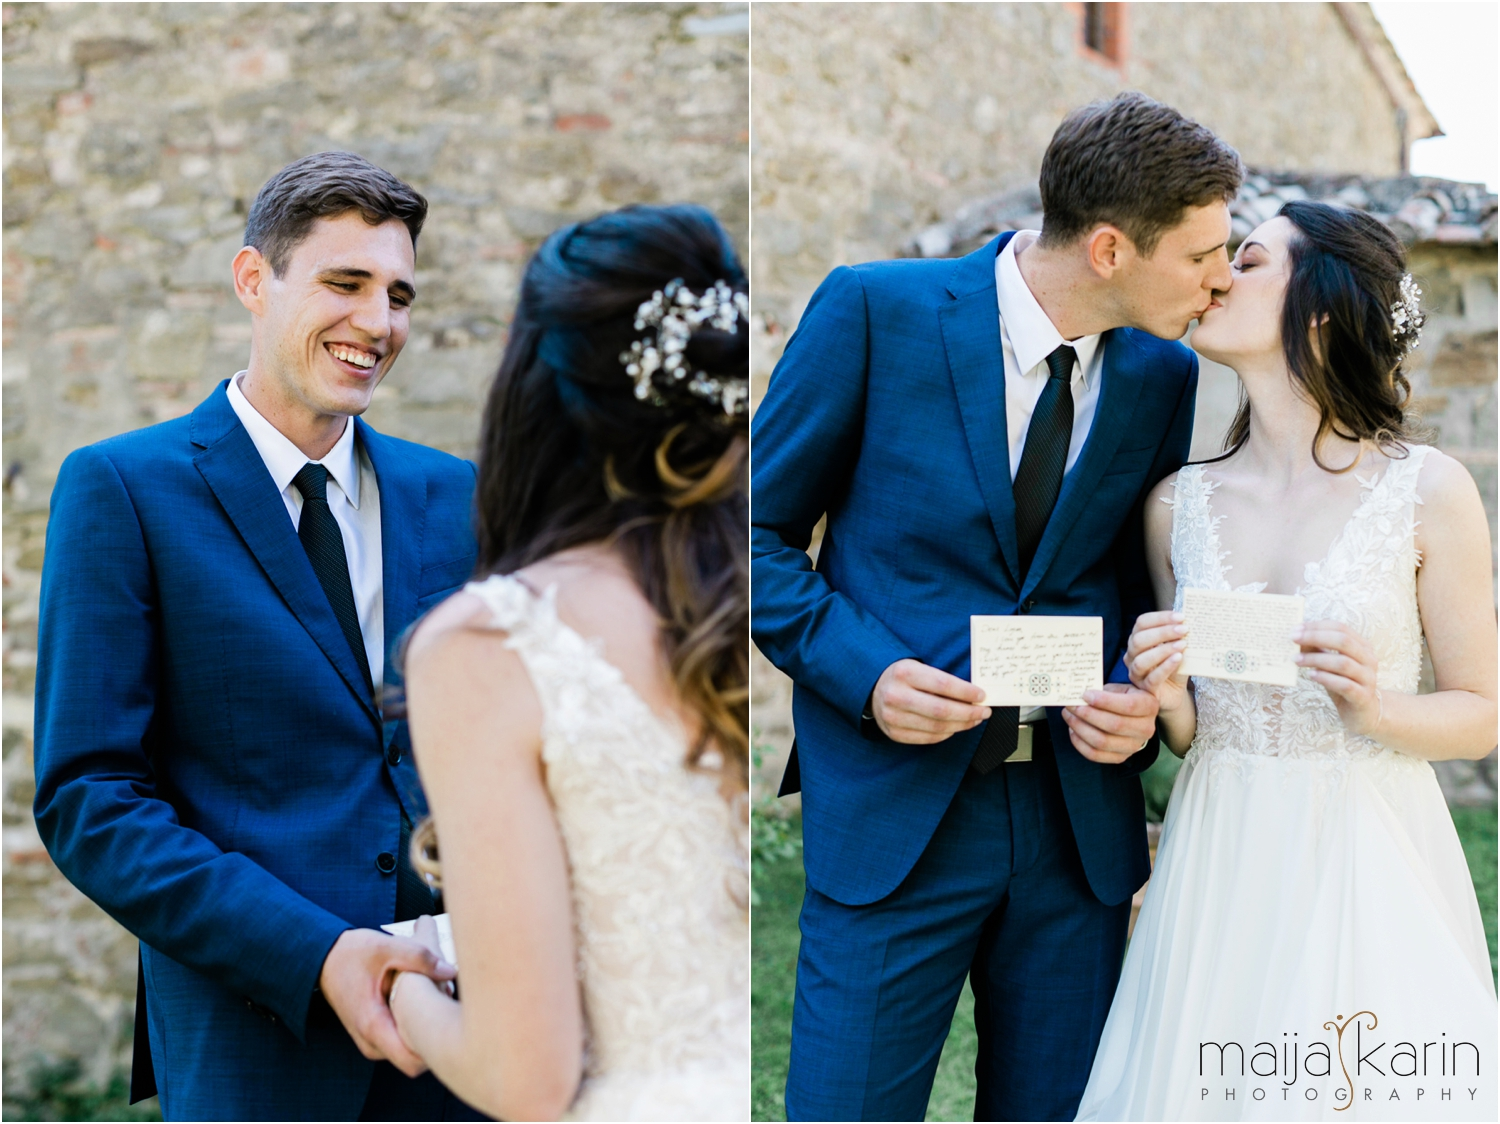 Castelvecchi-Tuscany-Wedding-Maija-Karin-Photography_0019.jpg